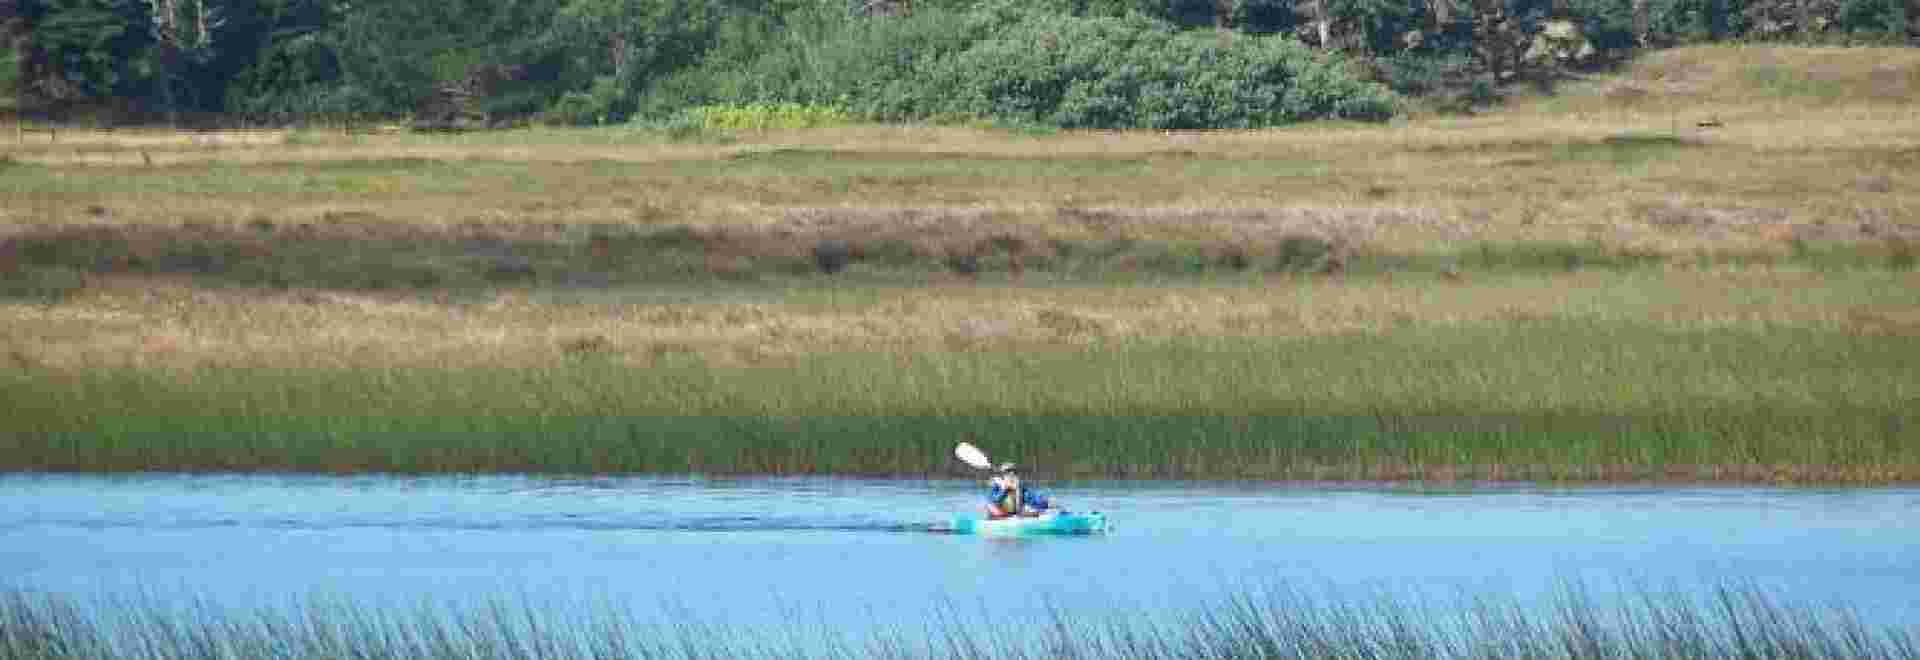 Kayaking on McLoughlin Pond